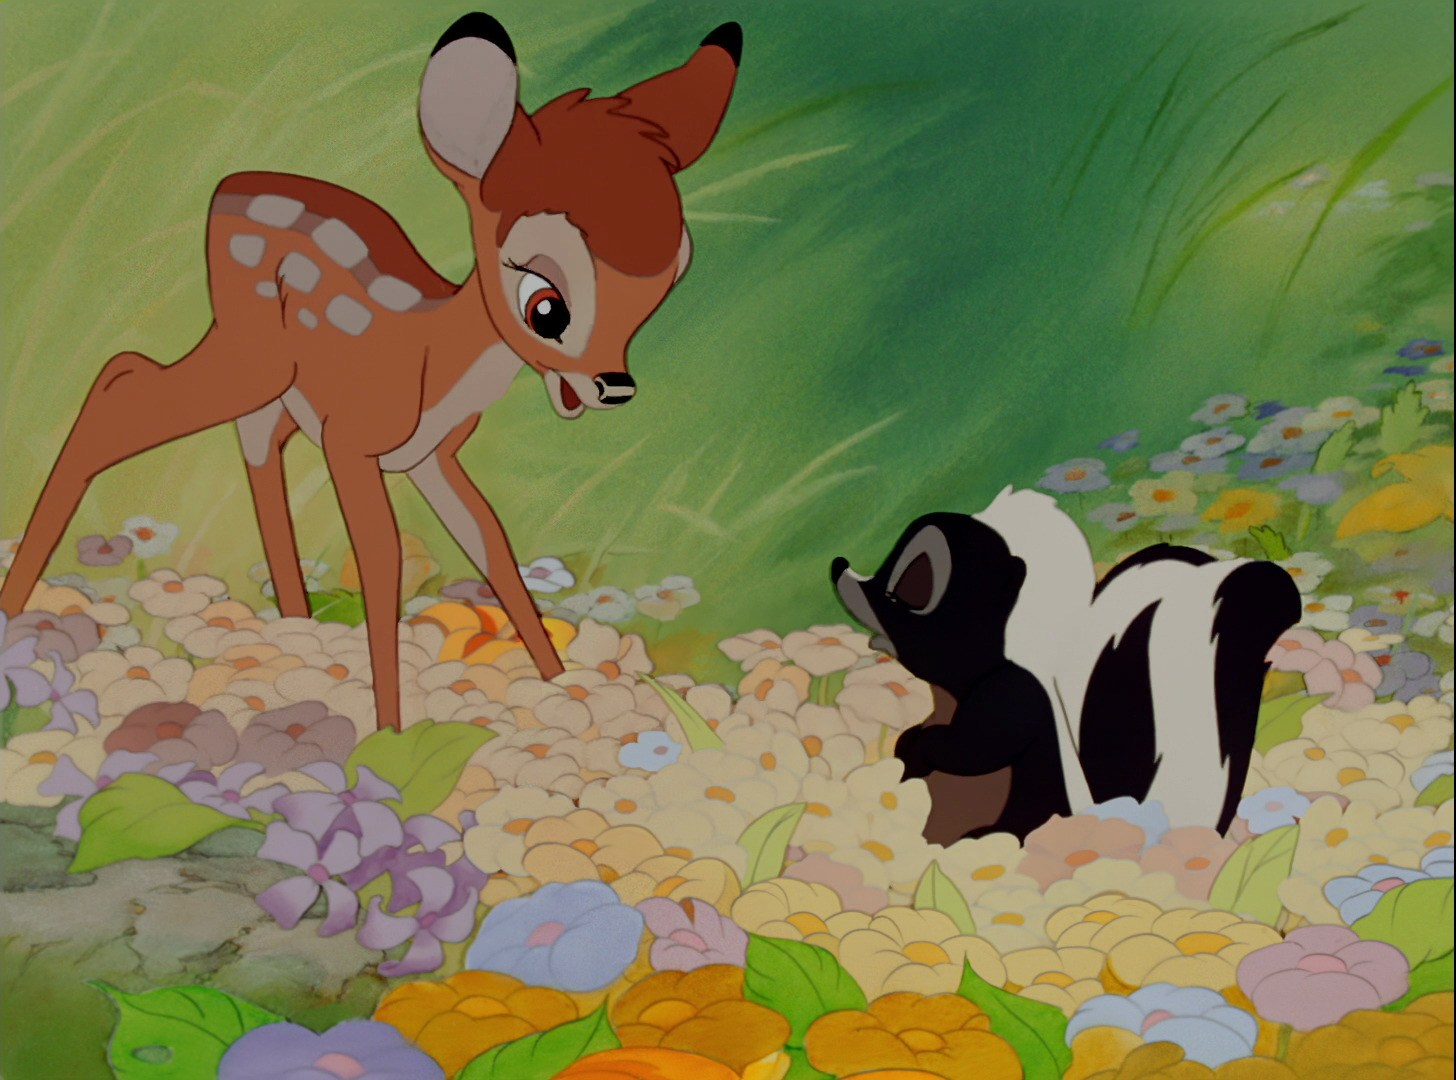 bambi looks at flower in a field of wildflowers